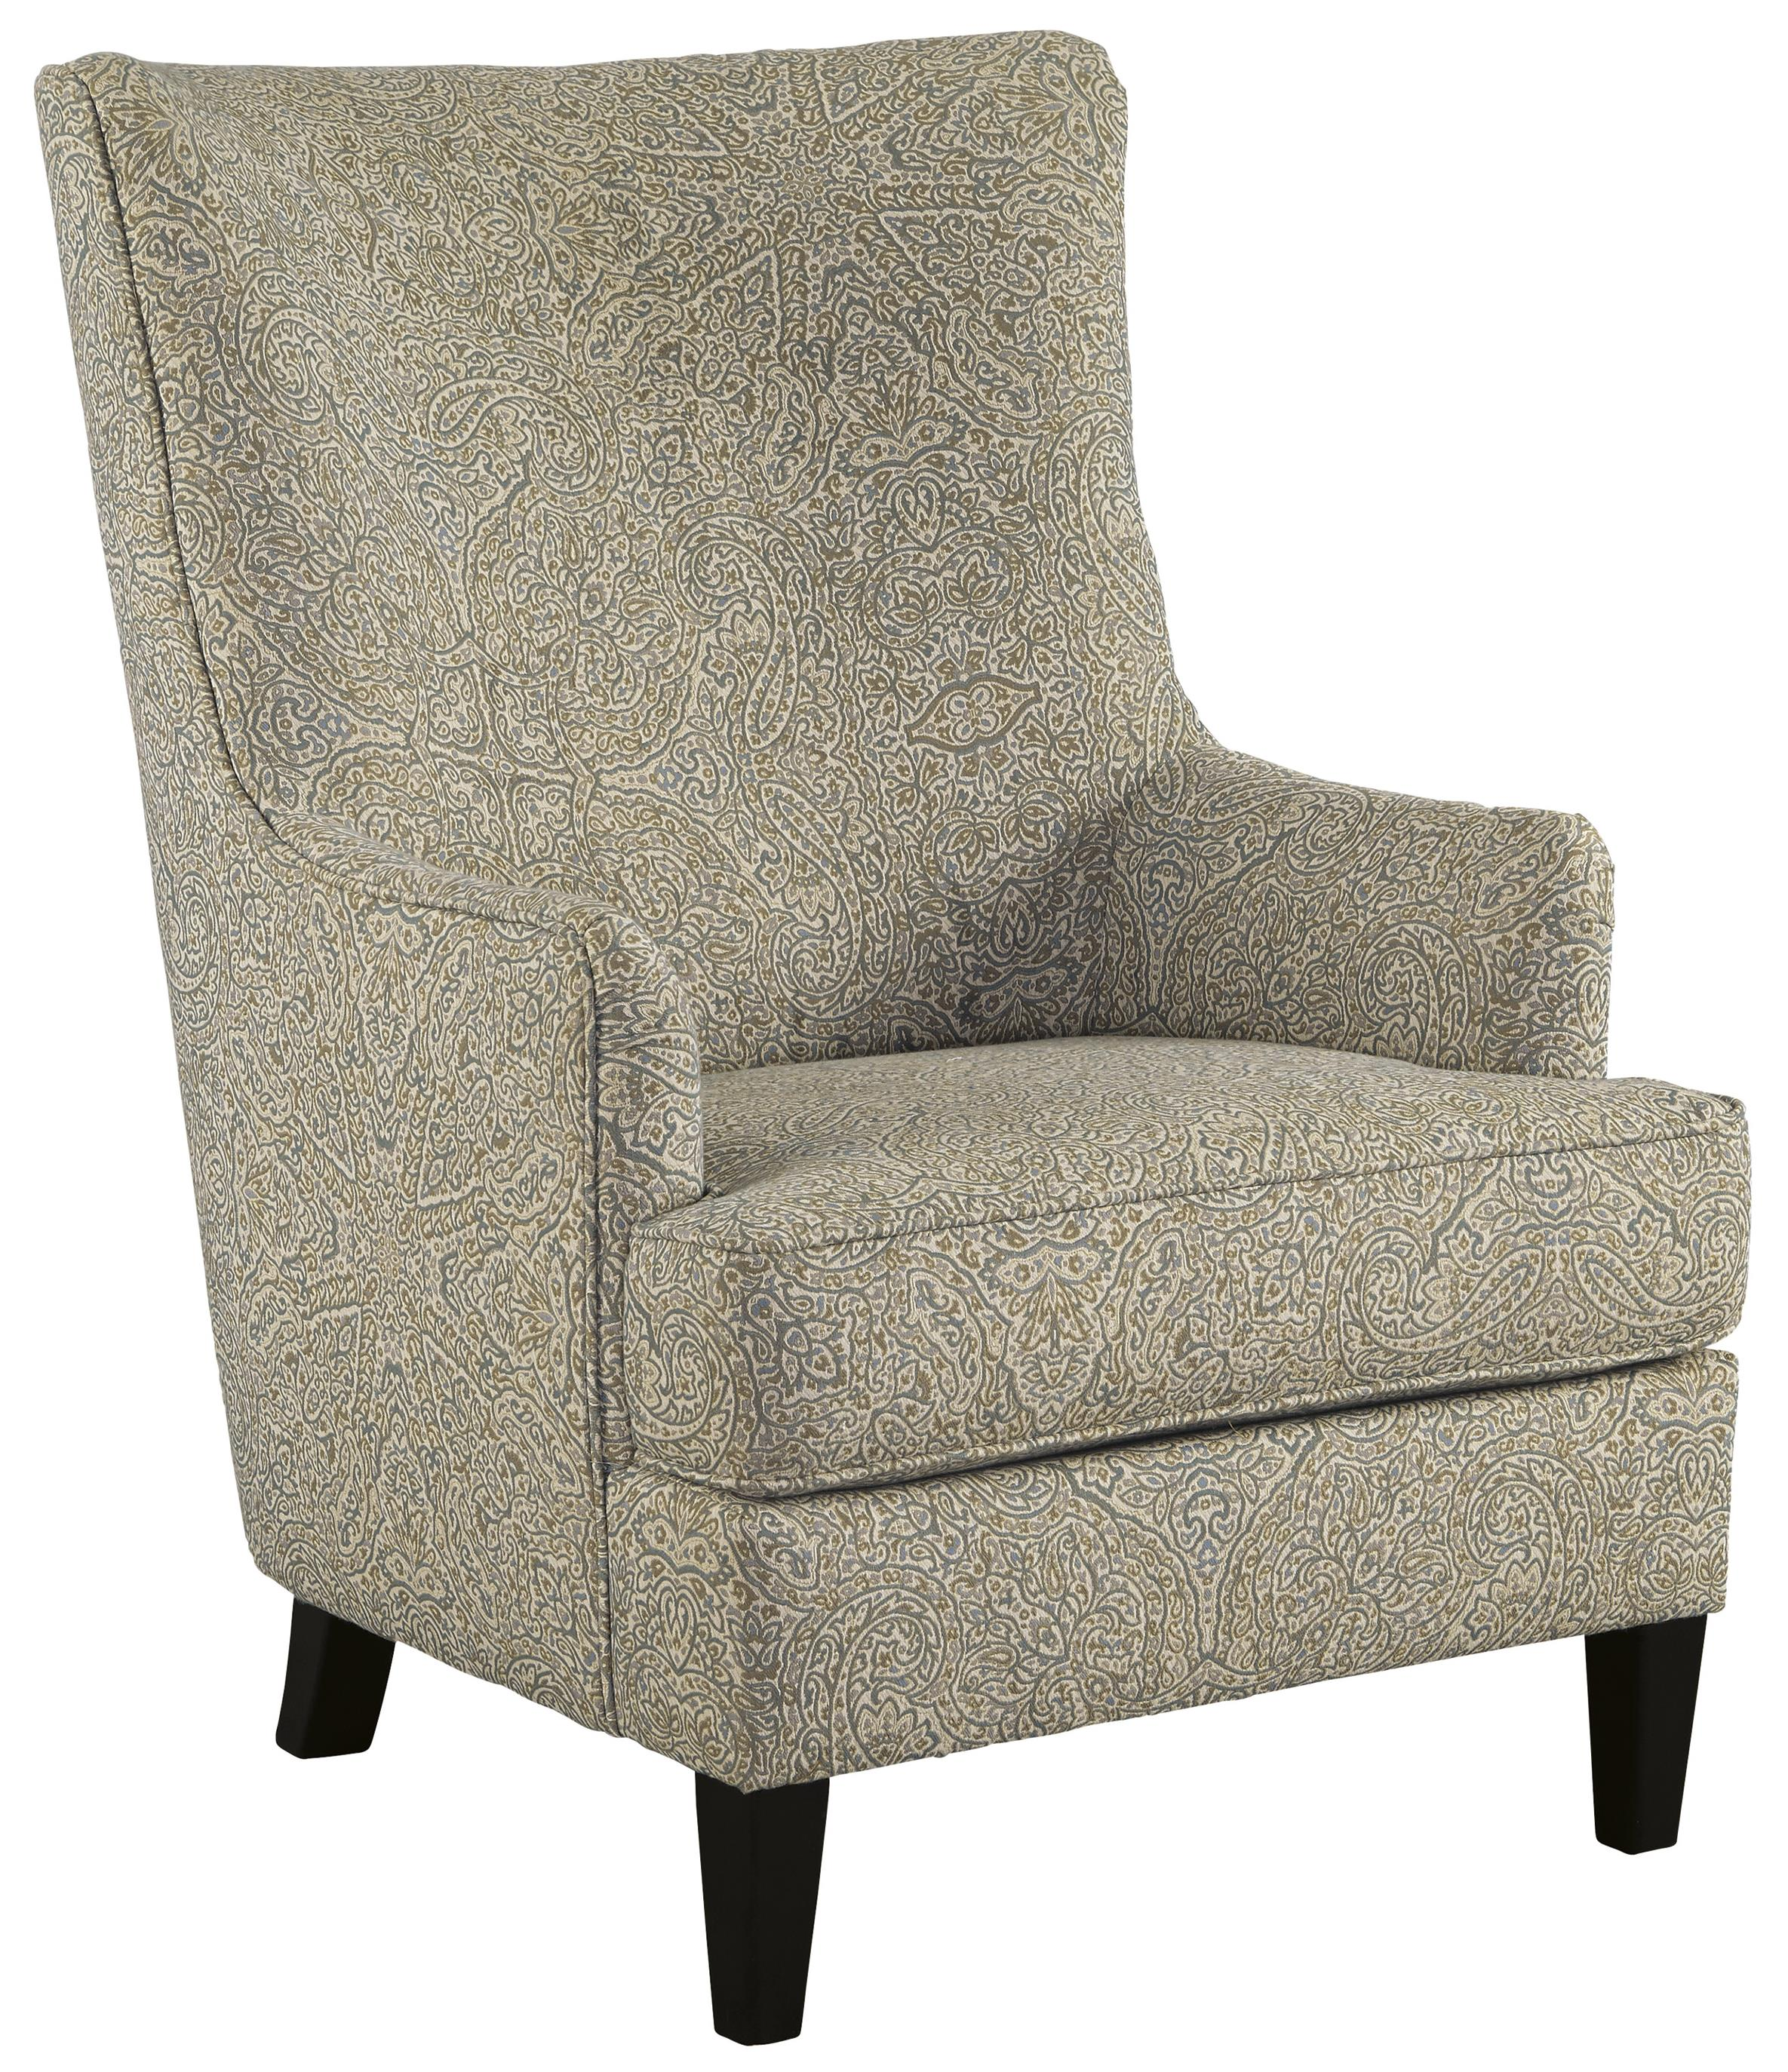 Signature Design By Ashley Kieran Transtional Accent Chair With Wing Back Miskelly Furniture